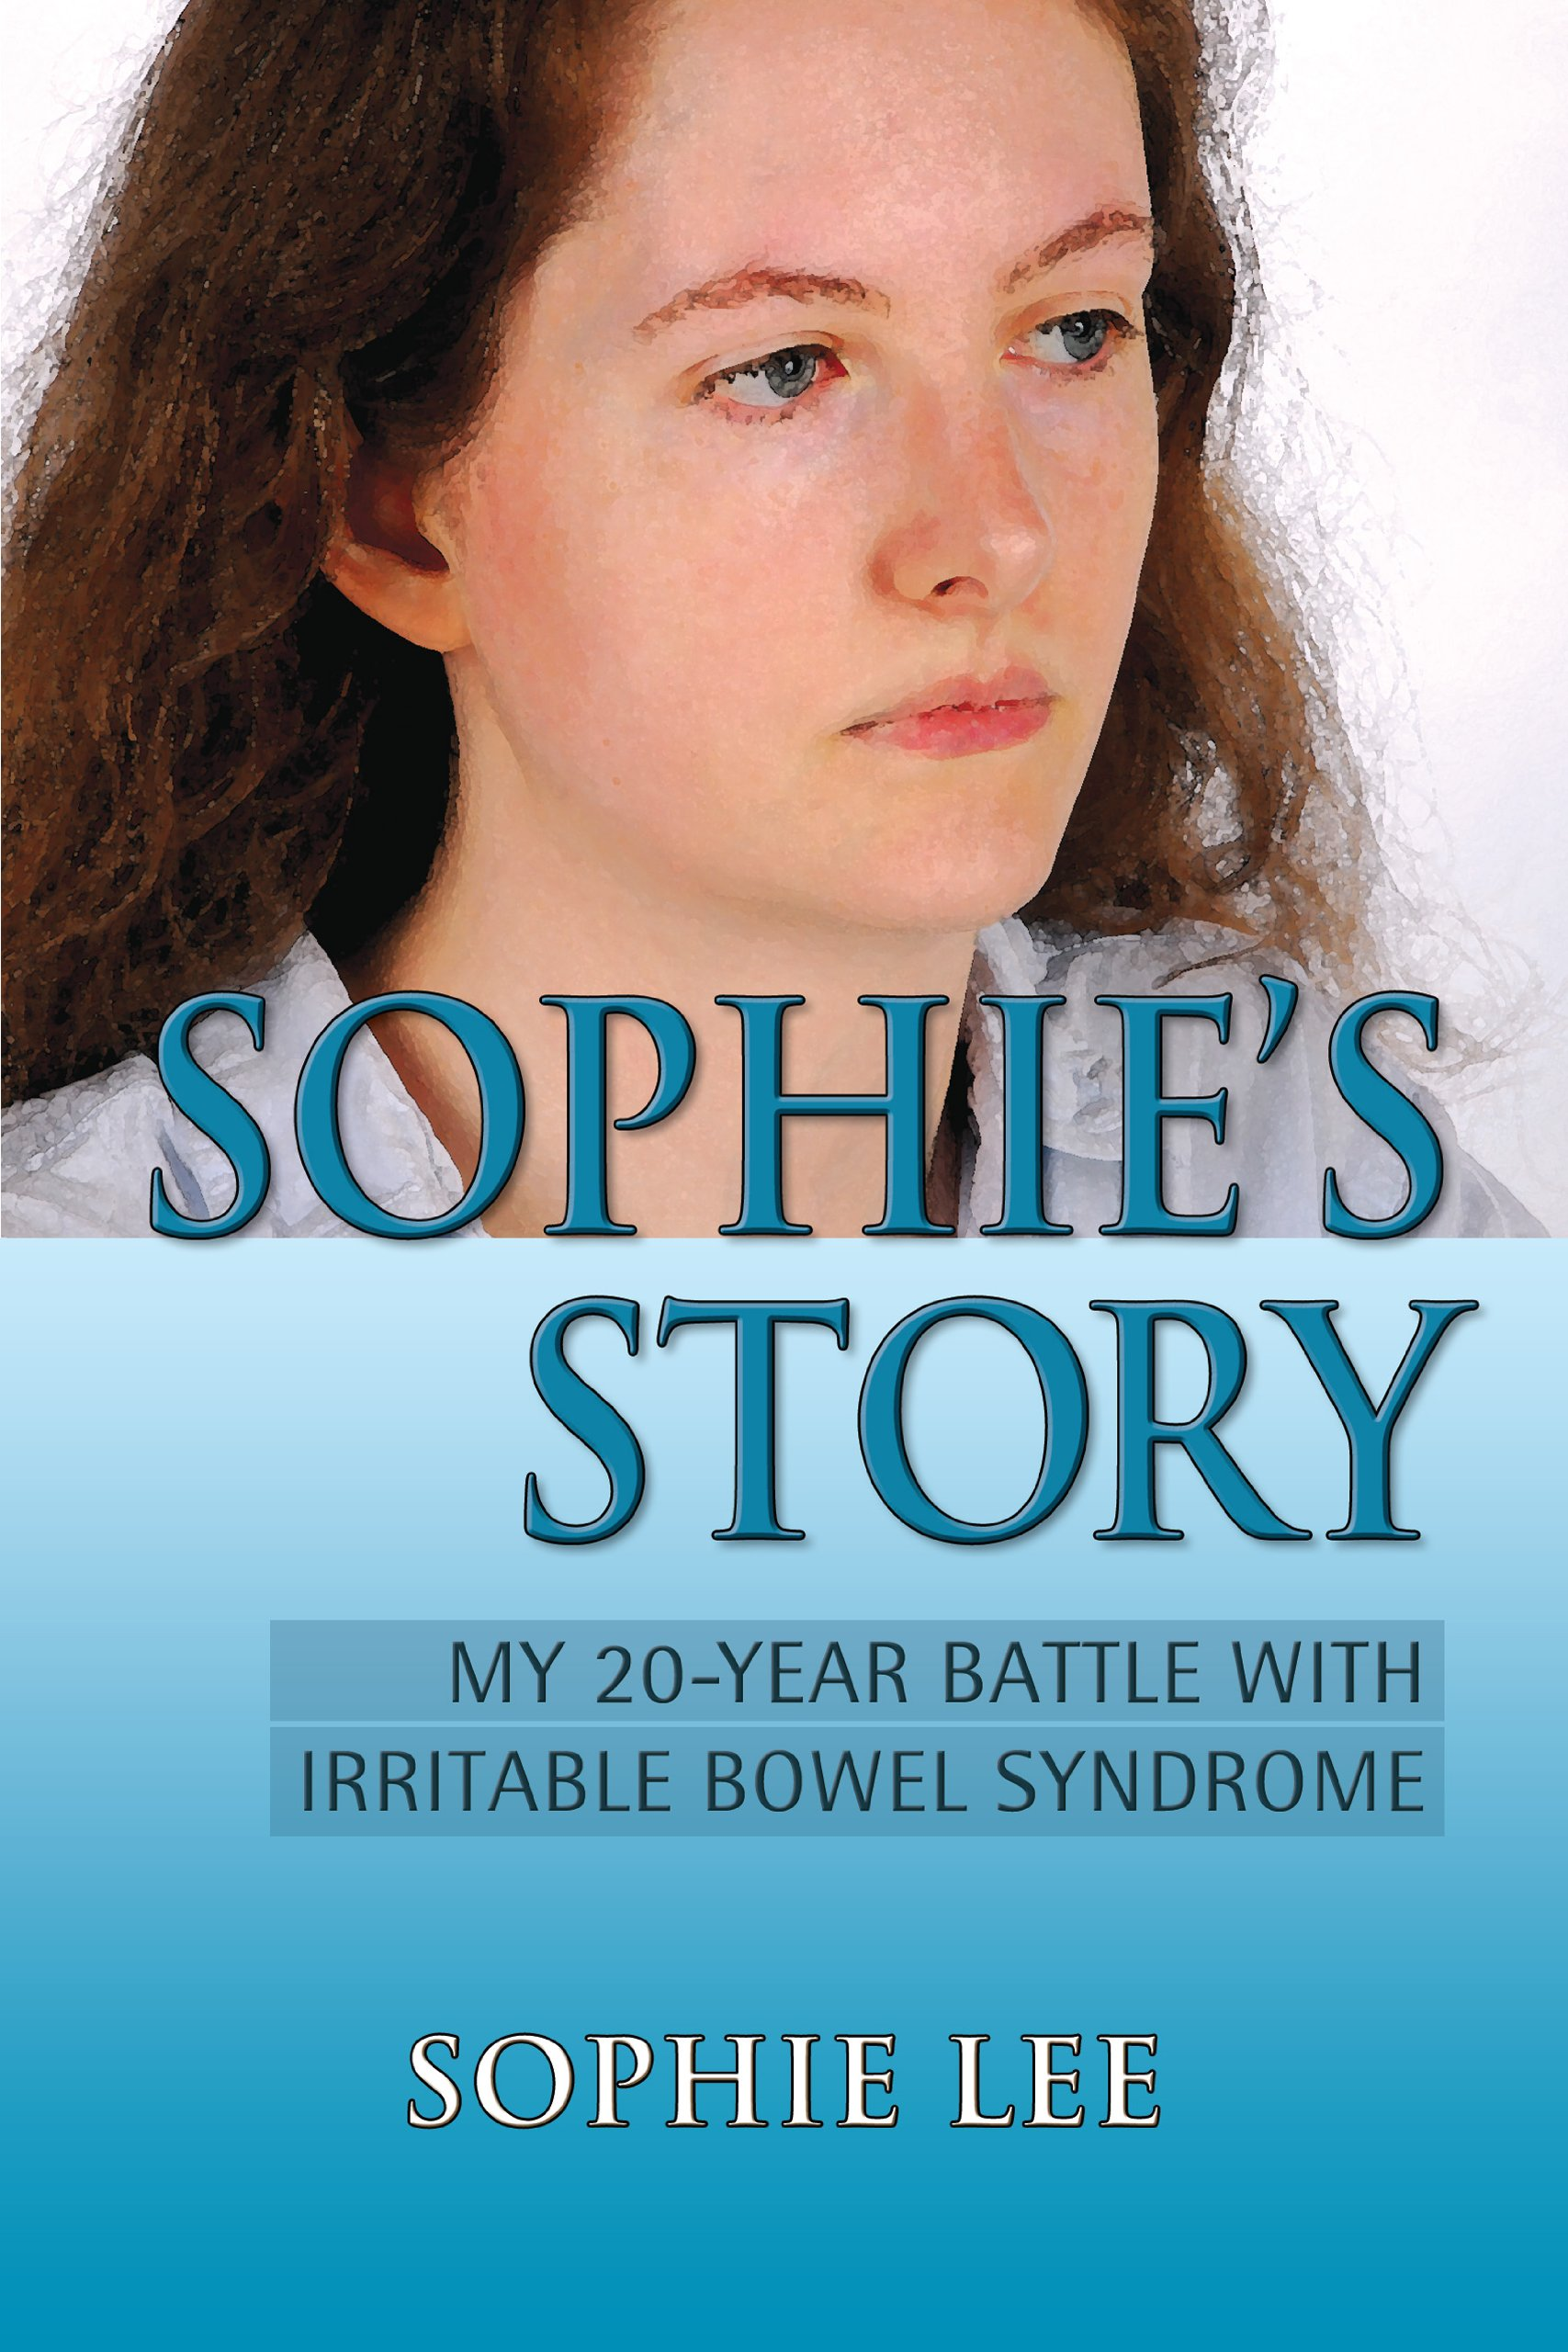 Book Review - Sophie's Story